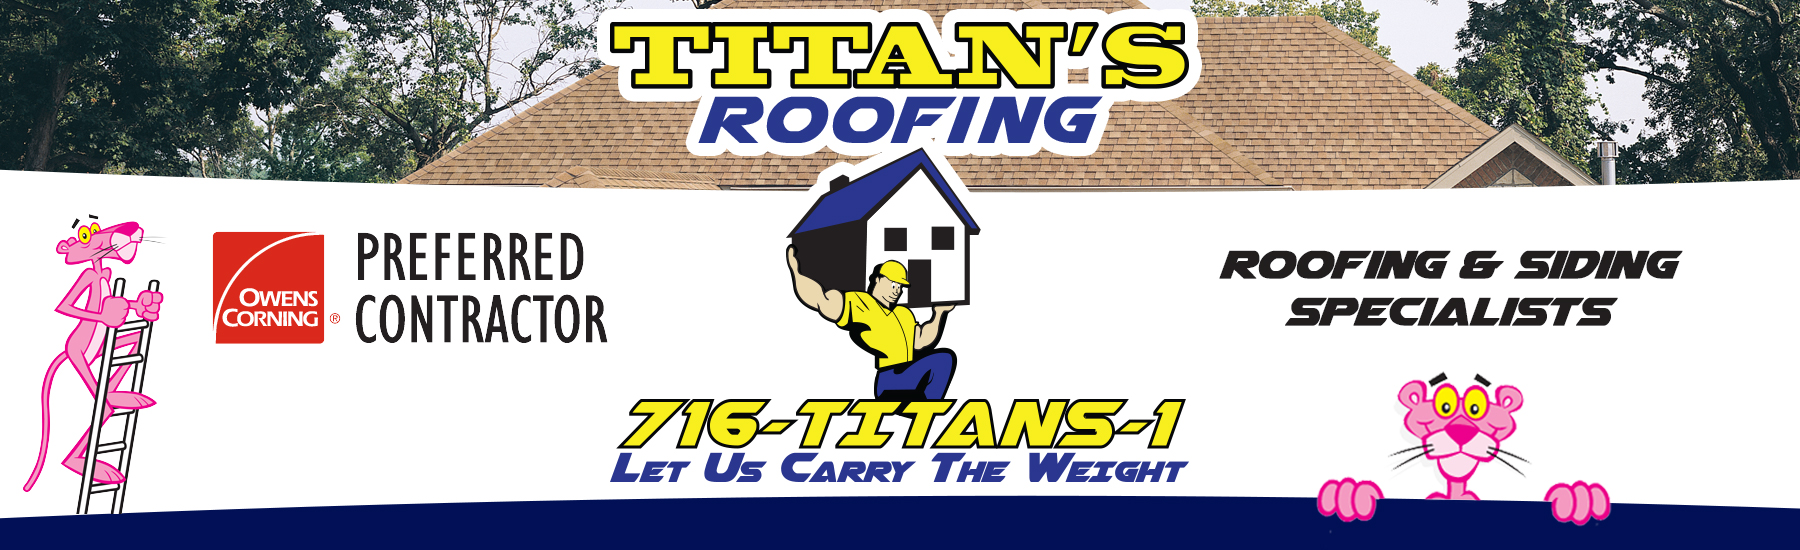 Gutters Titan S Roofing Roofing Siding Amp Exterior